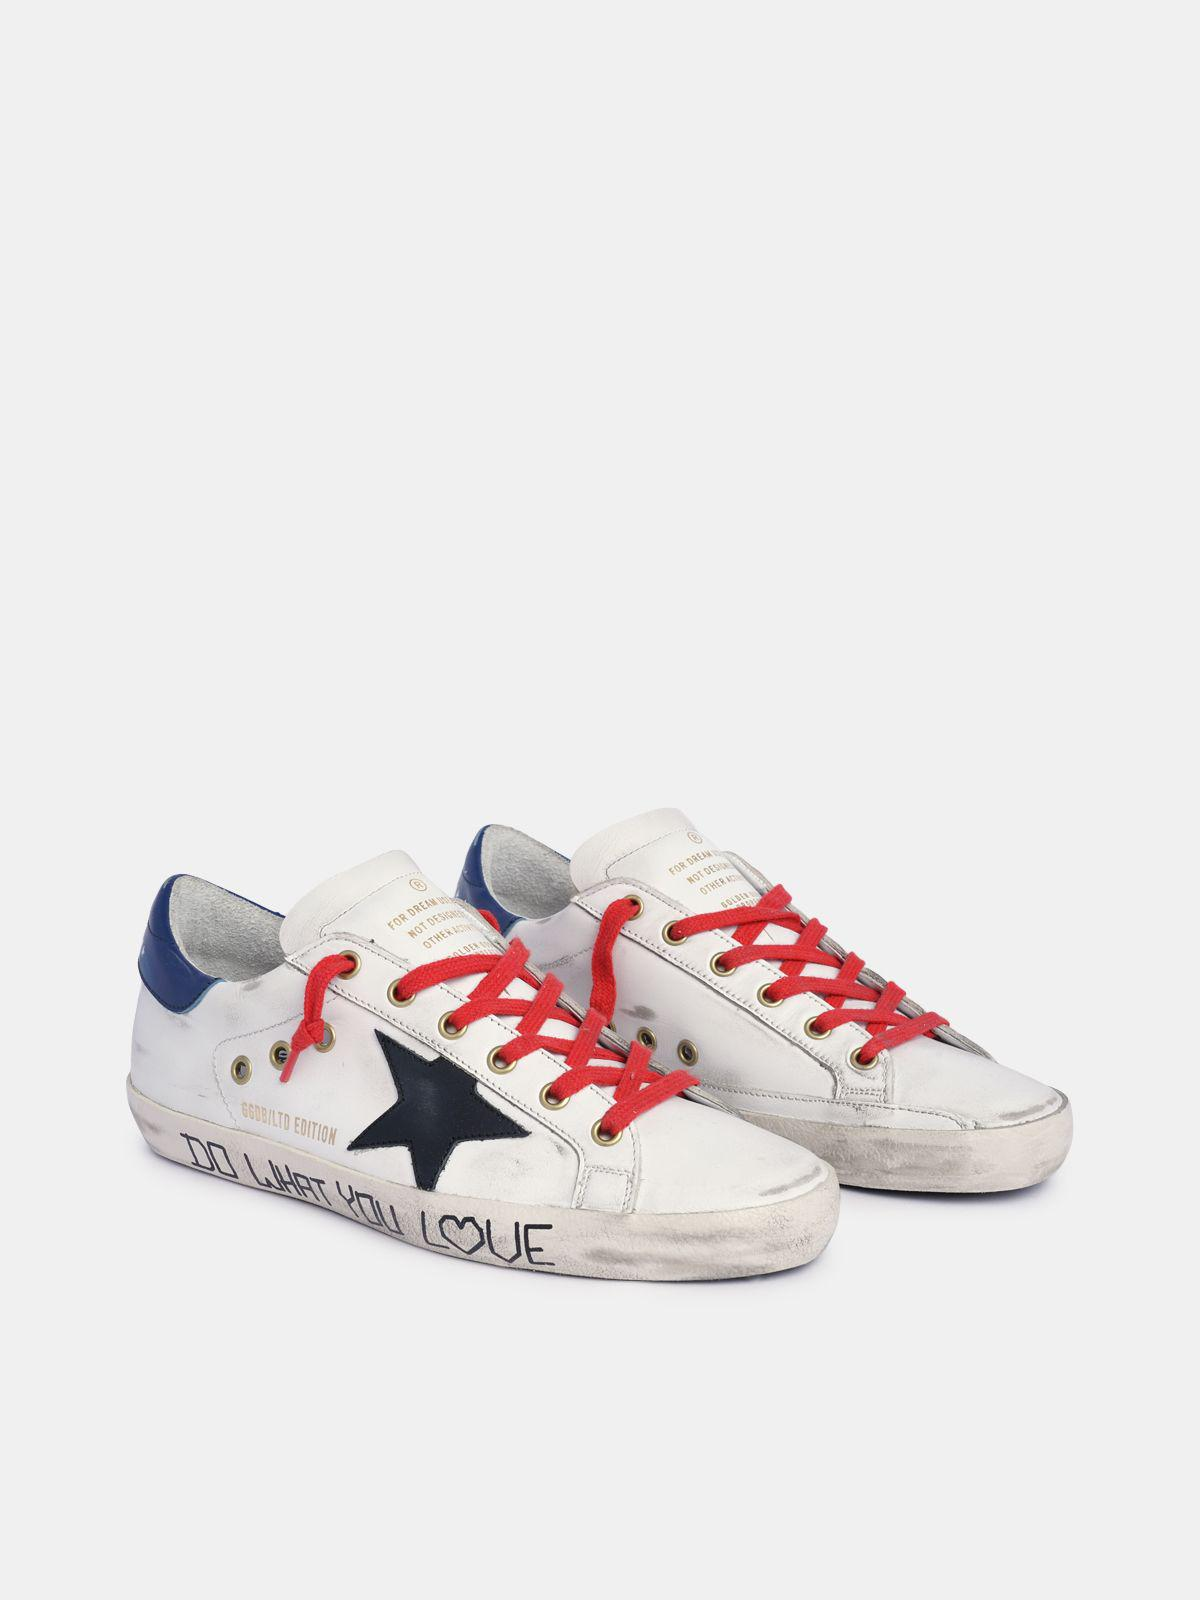 Super-Star sneakers in white leather with black star and blue heel tab 2